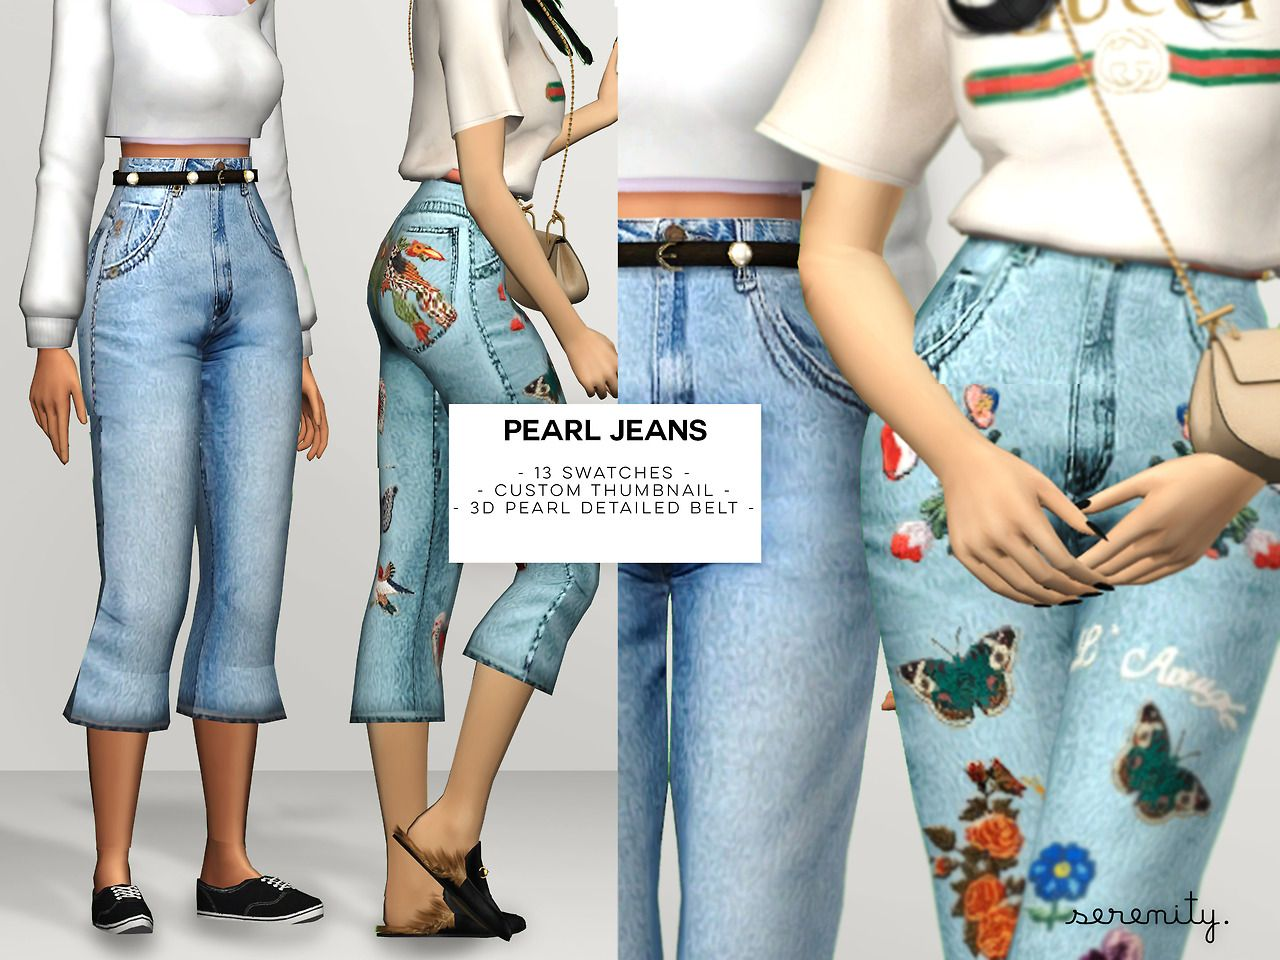 "serenity-cc:  "" PEARL JEANS  - custom thumbnail  - 13 swatches  - belt work smoothly with sliders!  hope you guys likee it! And don´t forget to tag me on your creations  DOWNLOAD AT MY WEBSITE thank to cc..."